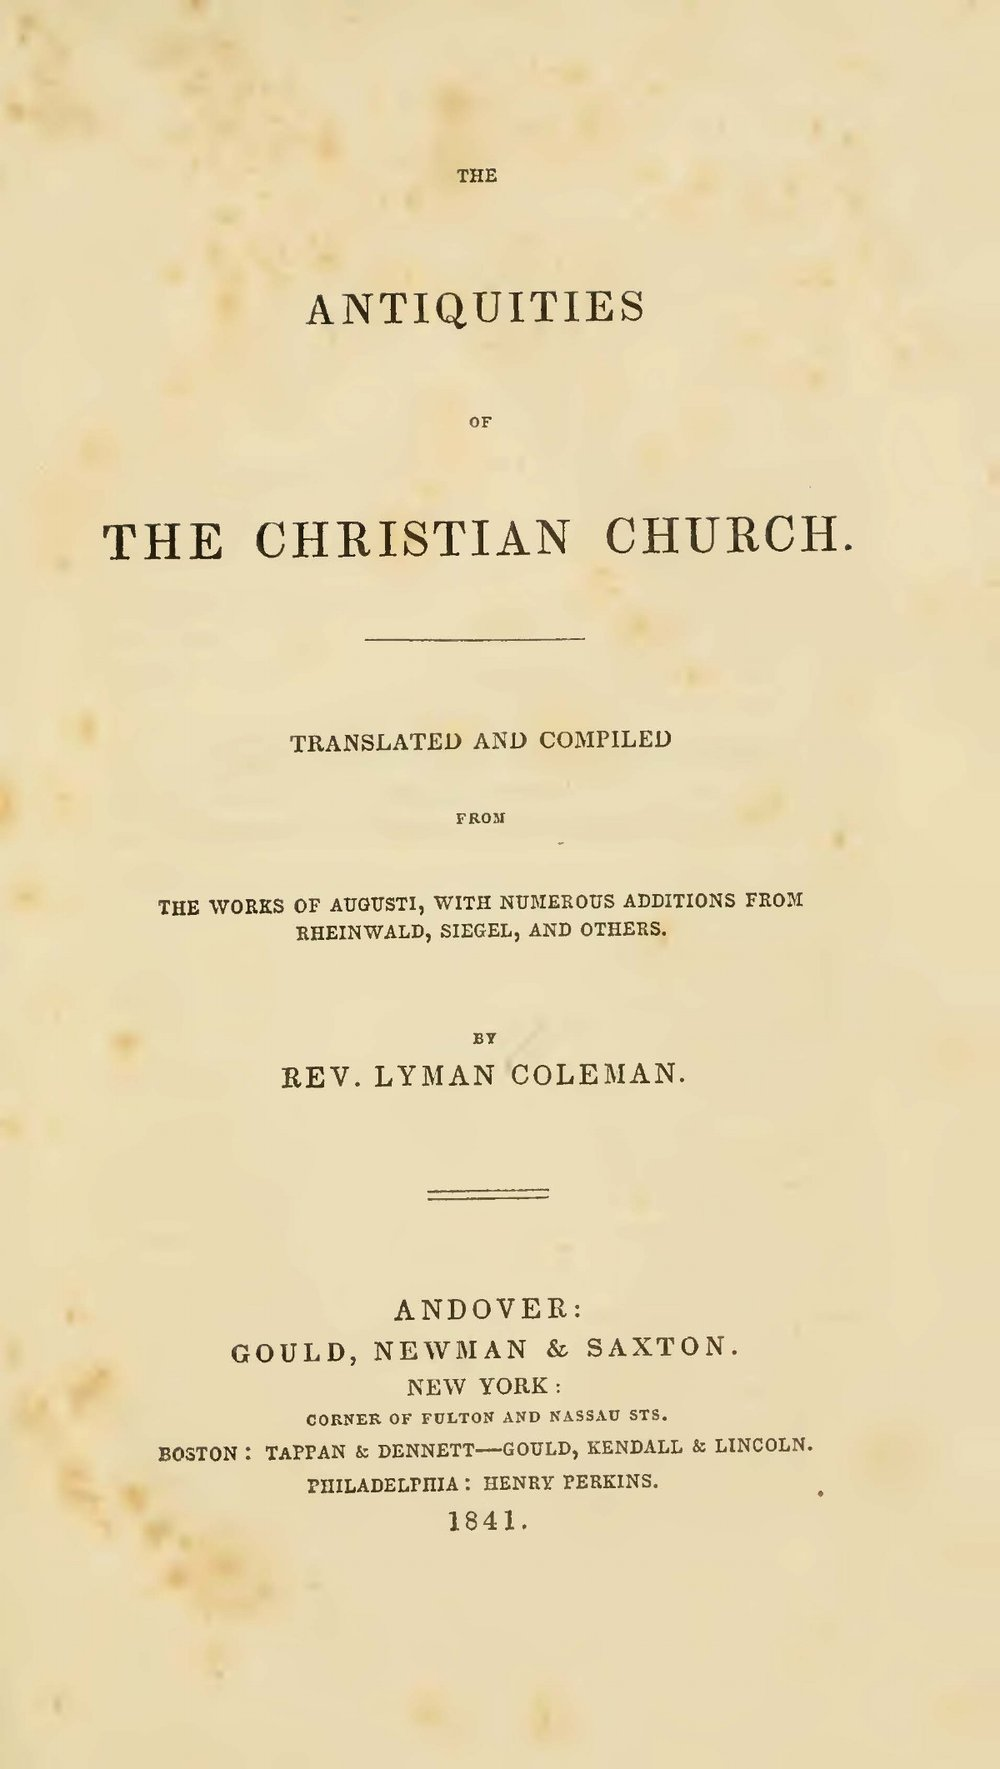 Coleman, Lyman, The Antiquities of the Christian Church Title Page.jpg